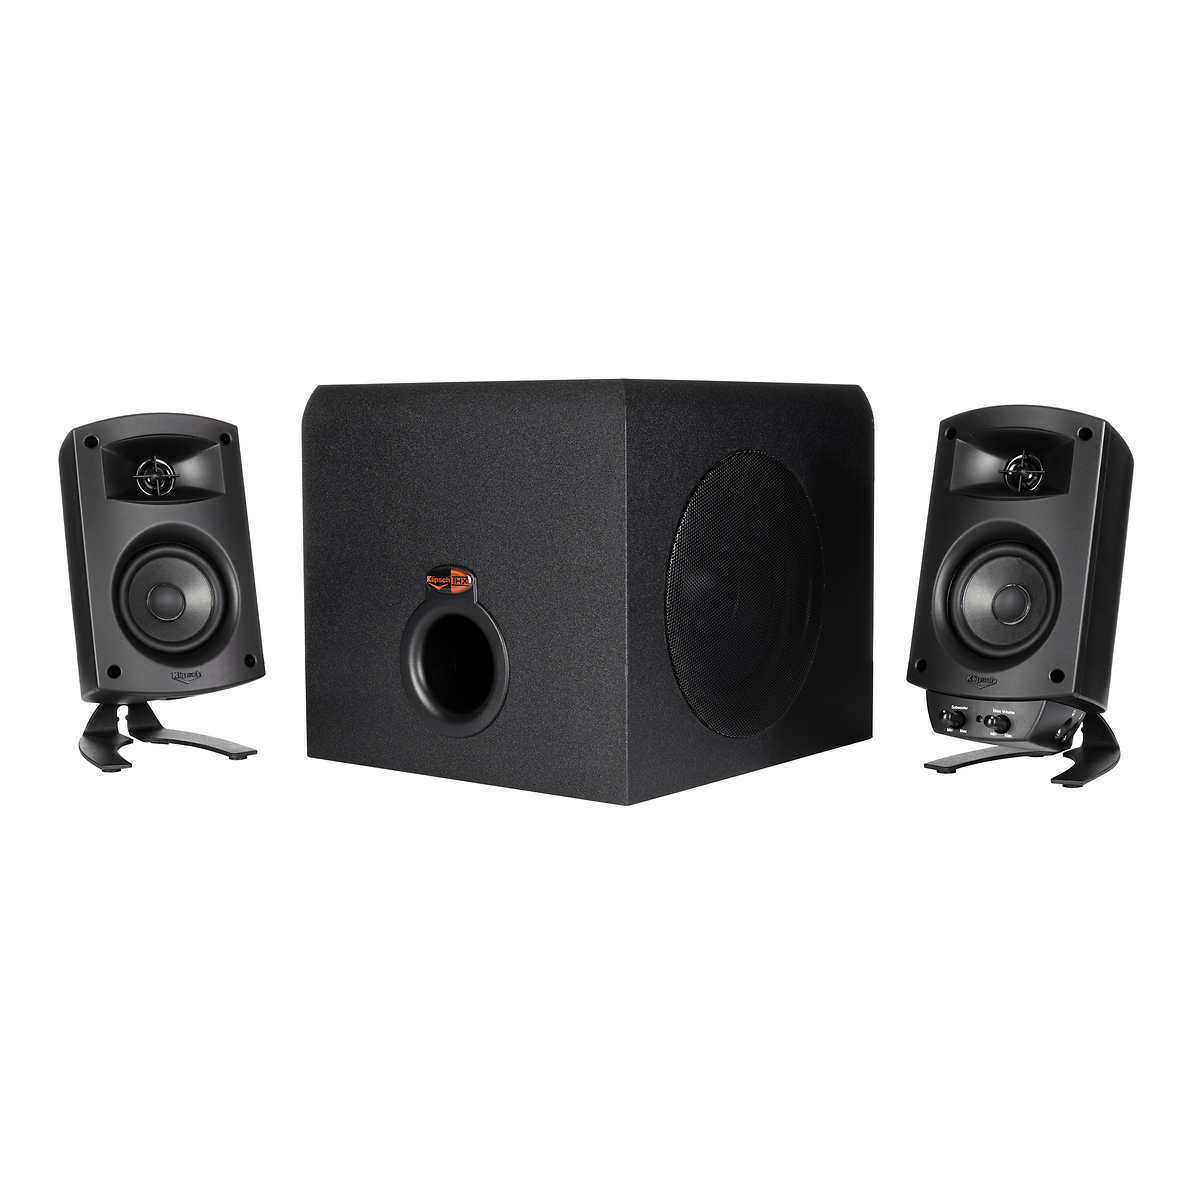 New Open Box Klipsch ProMedia 2.1 THX Certified Computer Speaker System - Black. Buy it now for 89.99